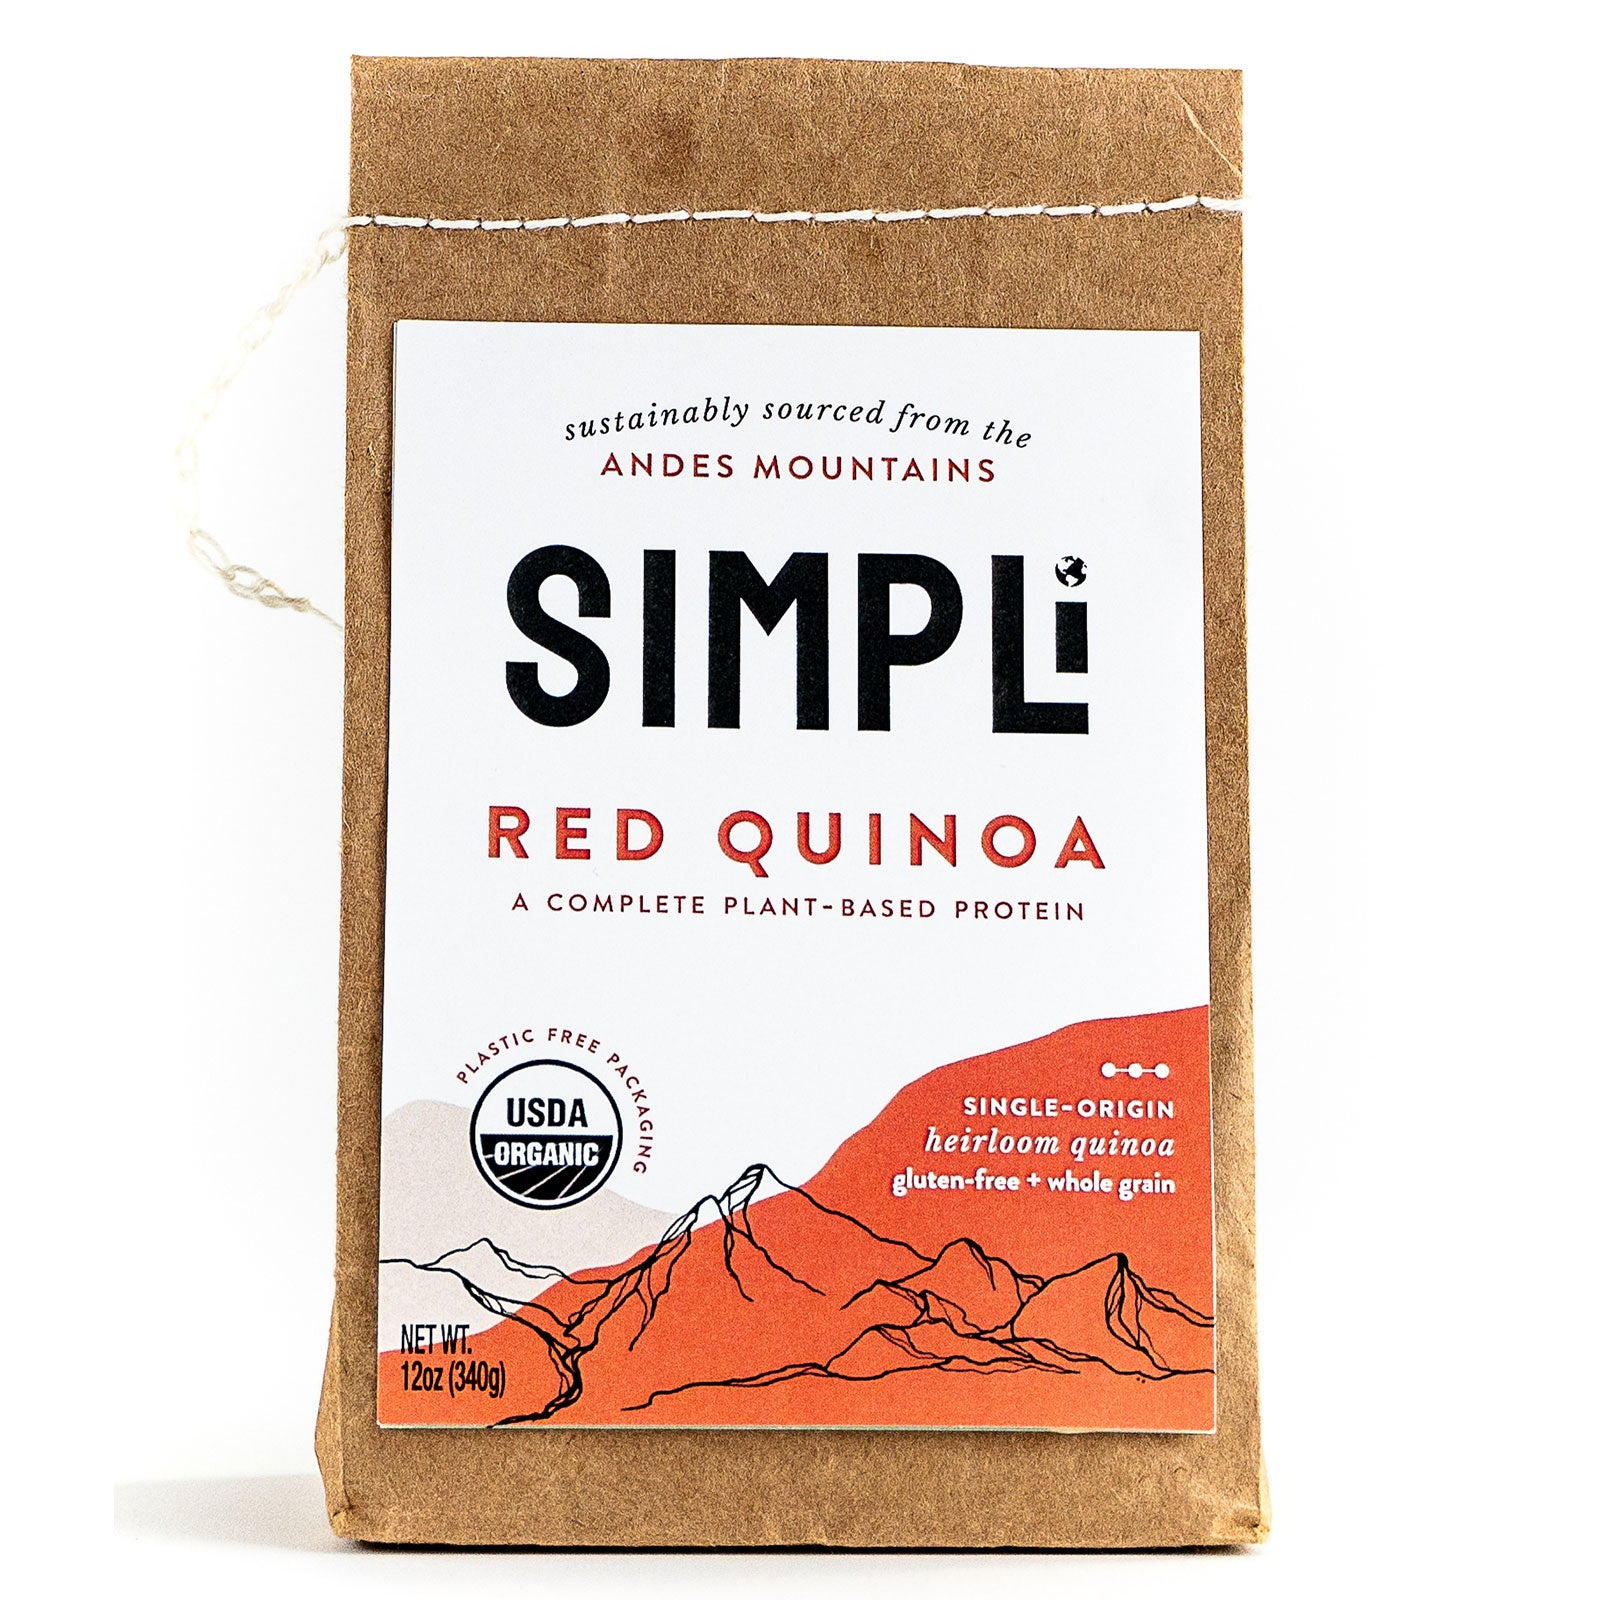 SIMPLi Red Quinoa package front